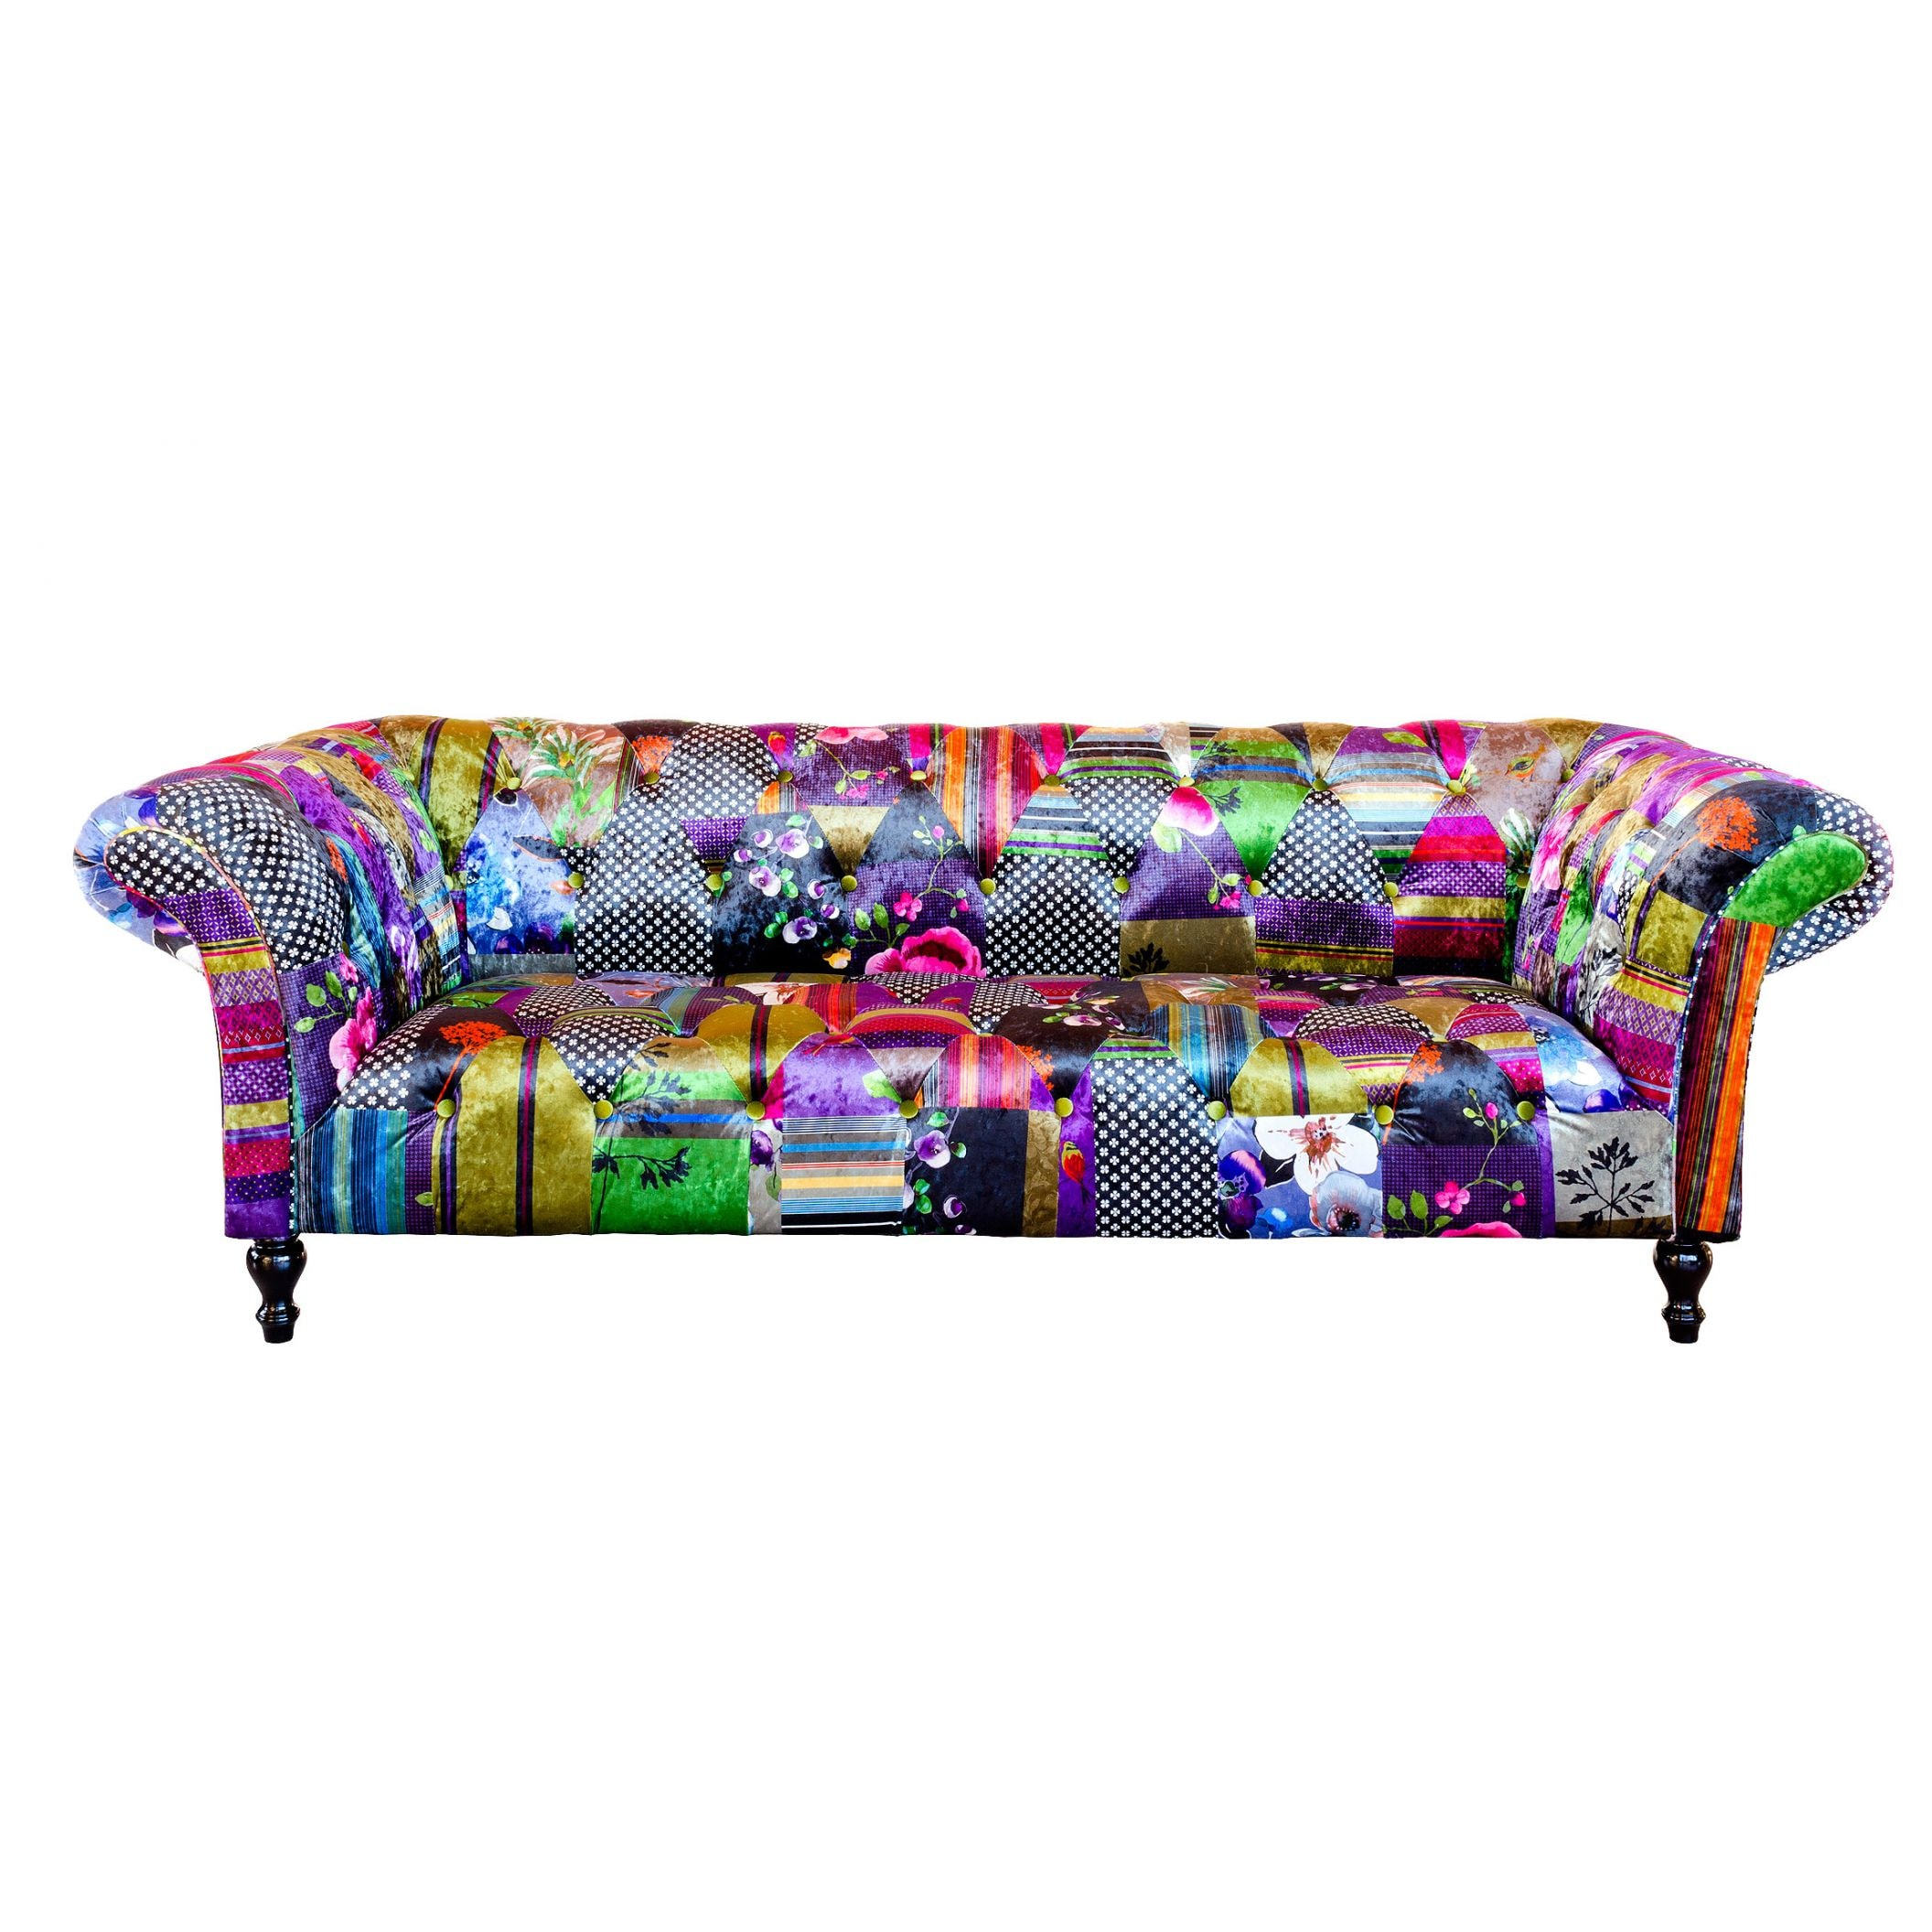 Full Size of Dfs Patchwork Sofa Gumtree Material Fabric Slipcovers Covers Uk Cover Doll Diy Informa Quilt The Range Ebay Corner Malaysia Where To Buy For Sale Design Couch Sofa Sofa Patchwork